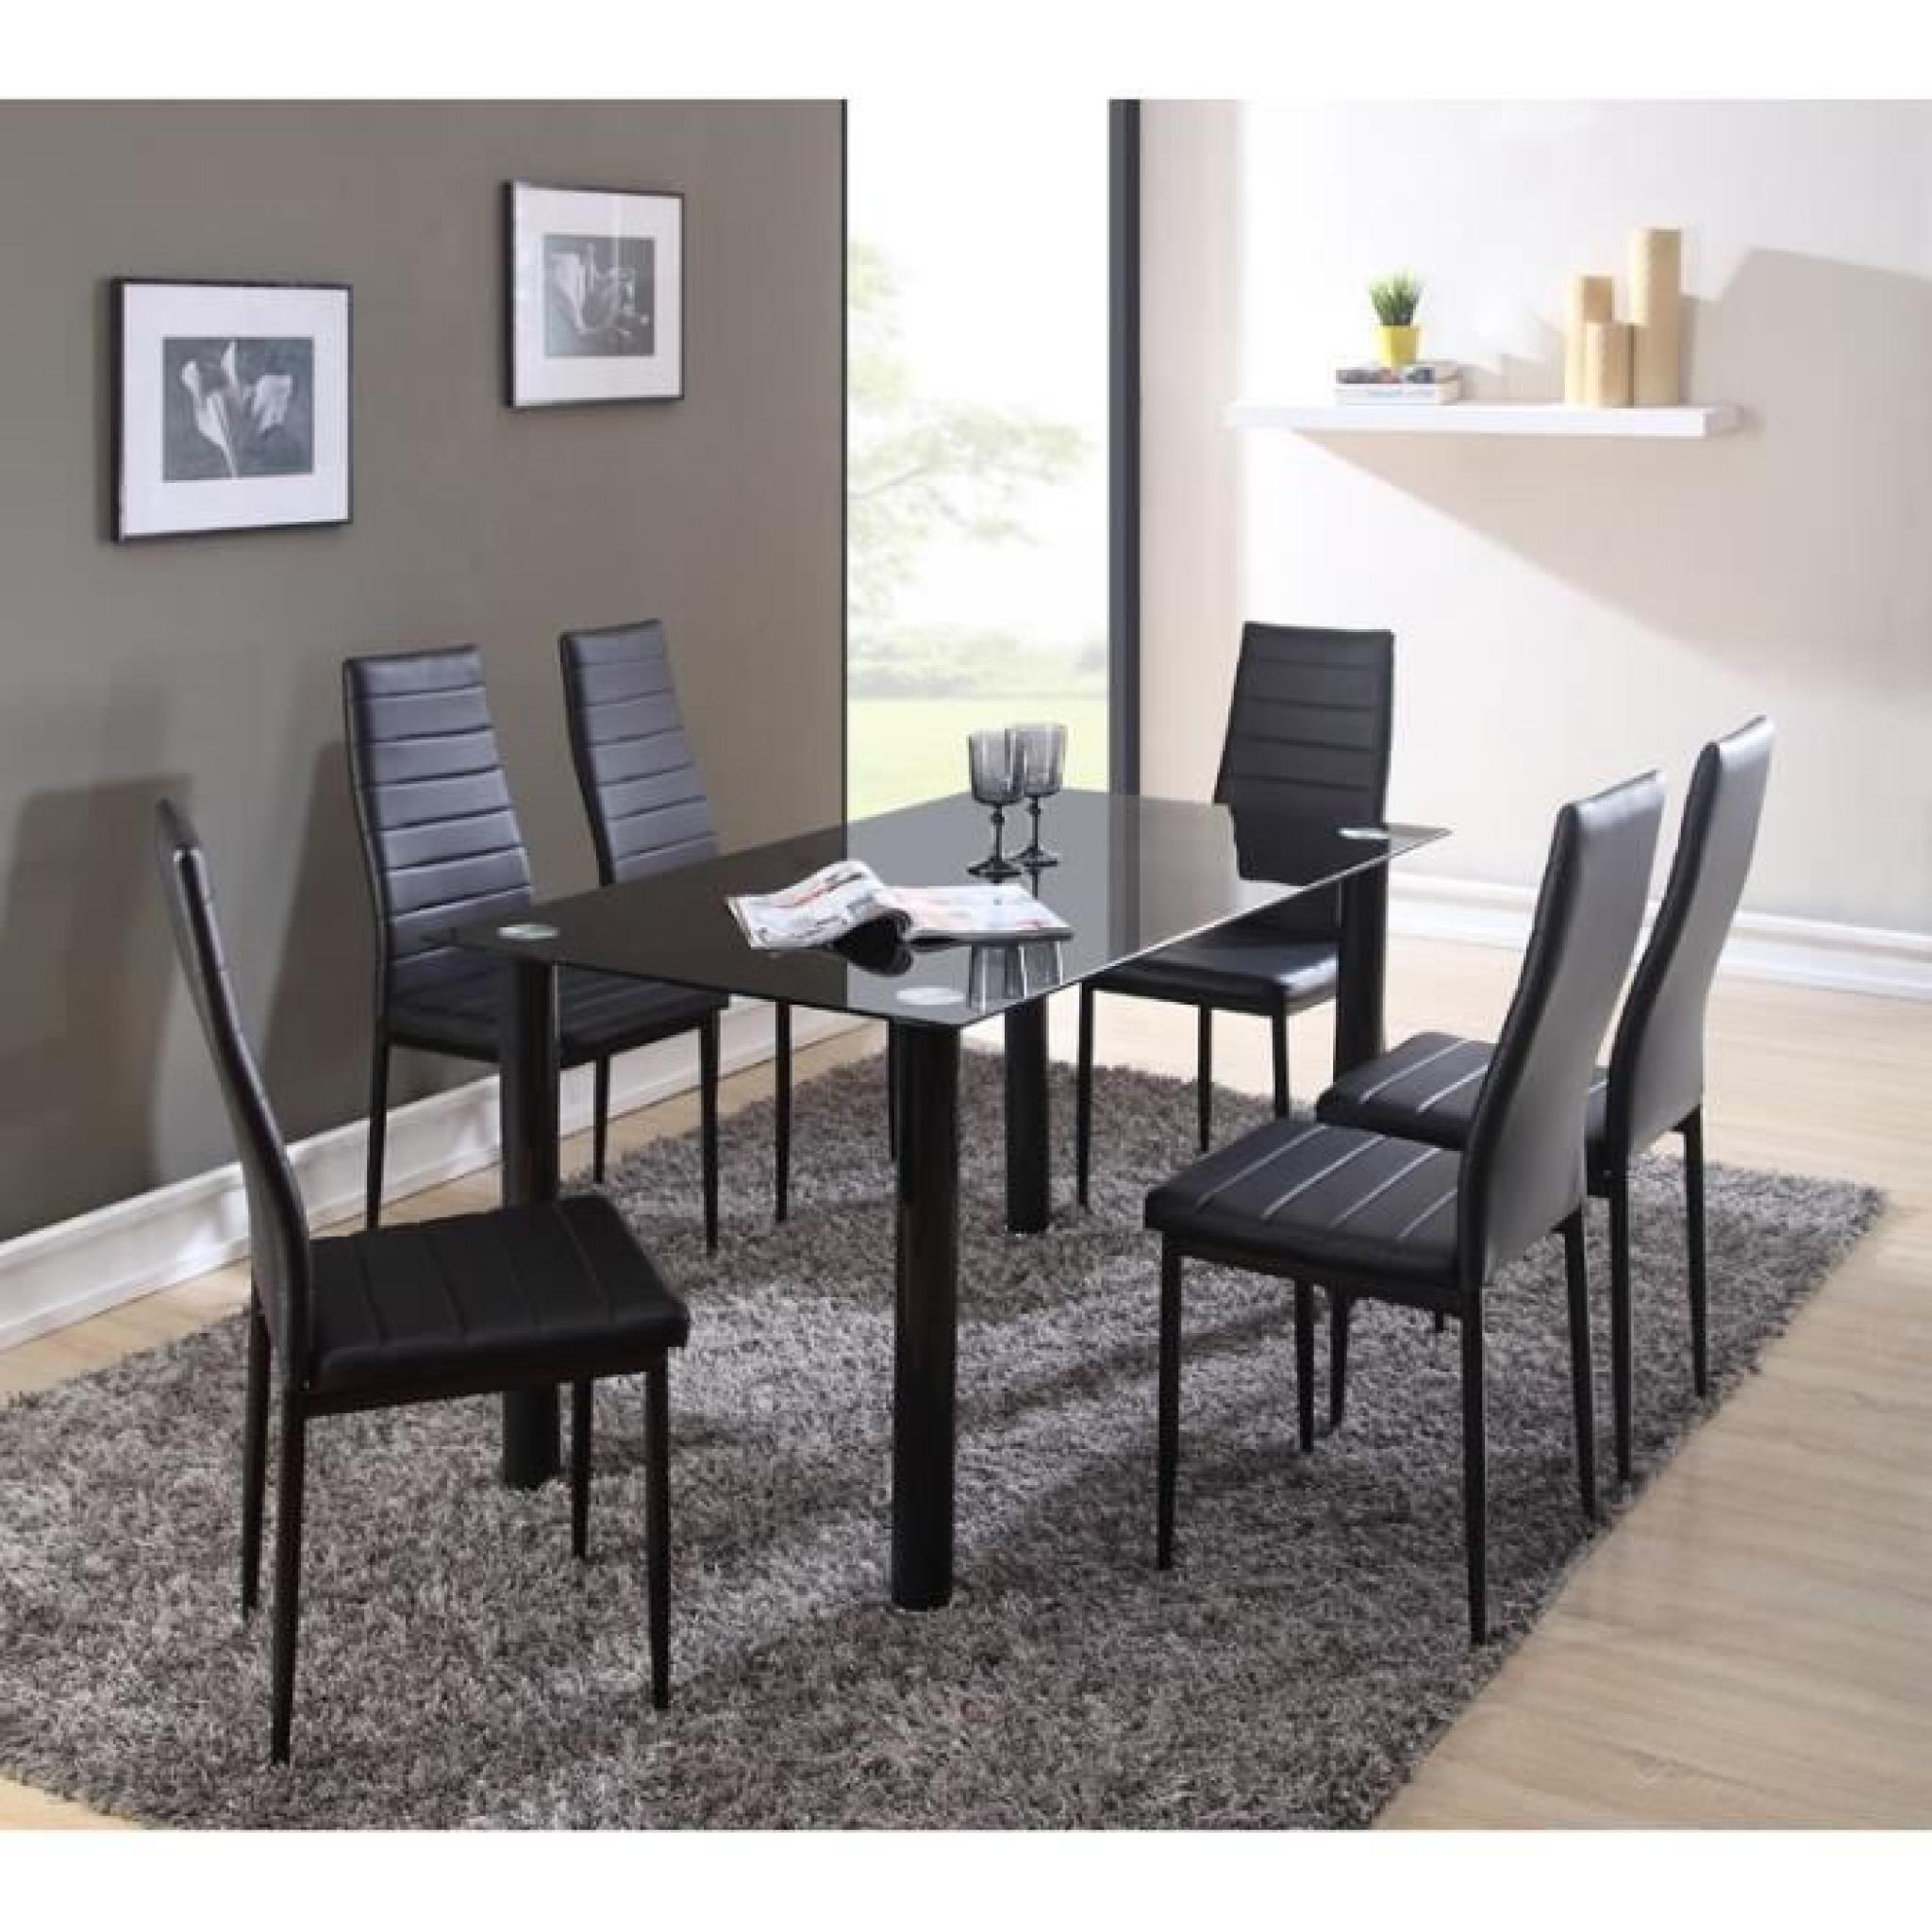 belair ensemble repas coloris noir 7 pi ces 1 table manger 6 chaises achat vente table. Black Bedroom Furniture Sets. Home Design Ideas